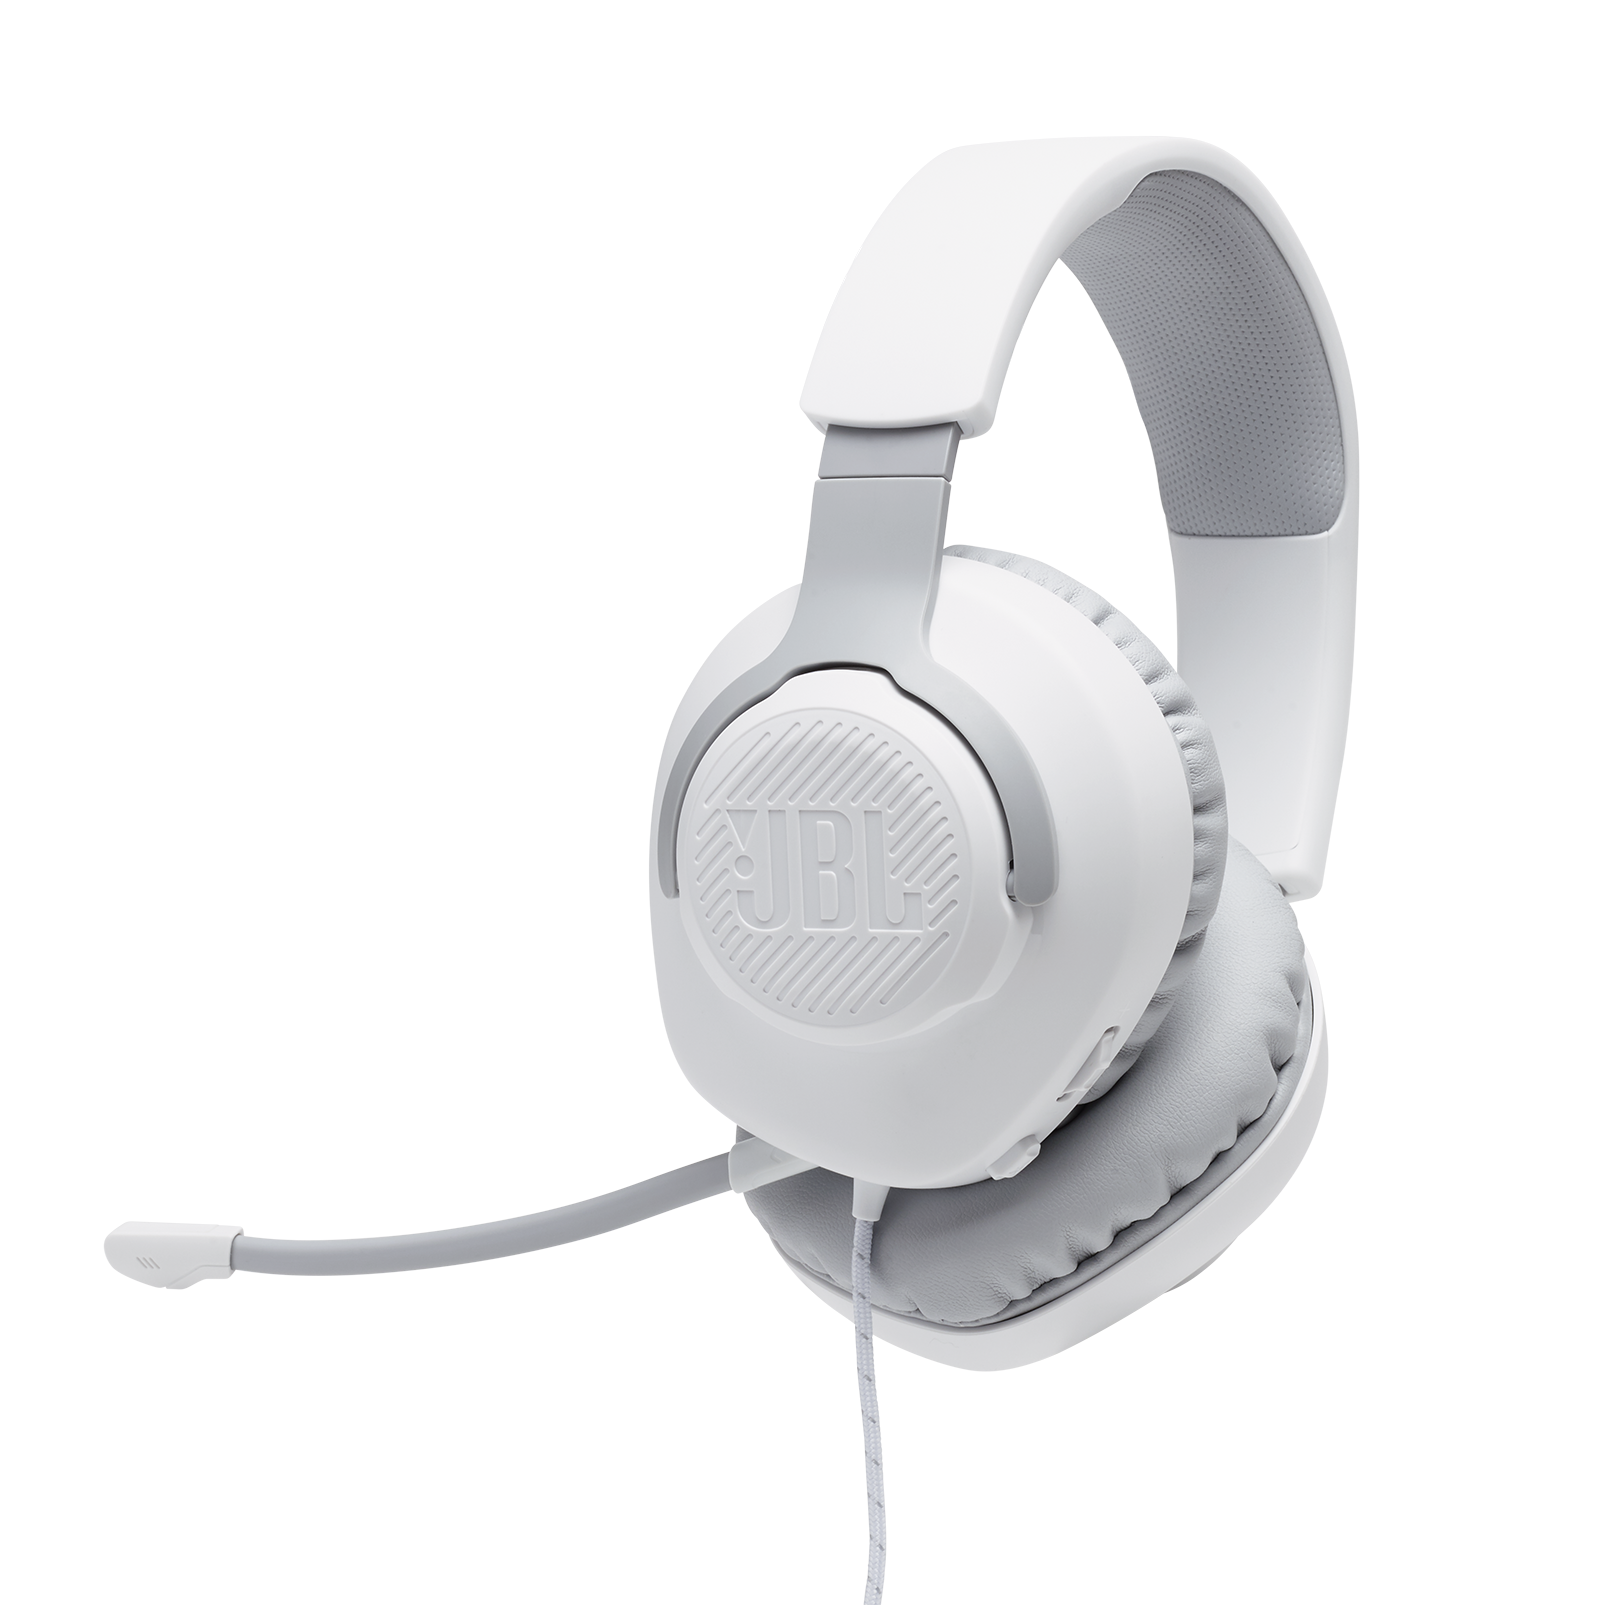 JBL Quantum 100 - White - Wired over-ear gaming headset with a detachable mic - Hero